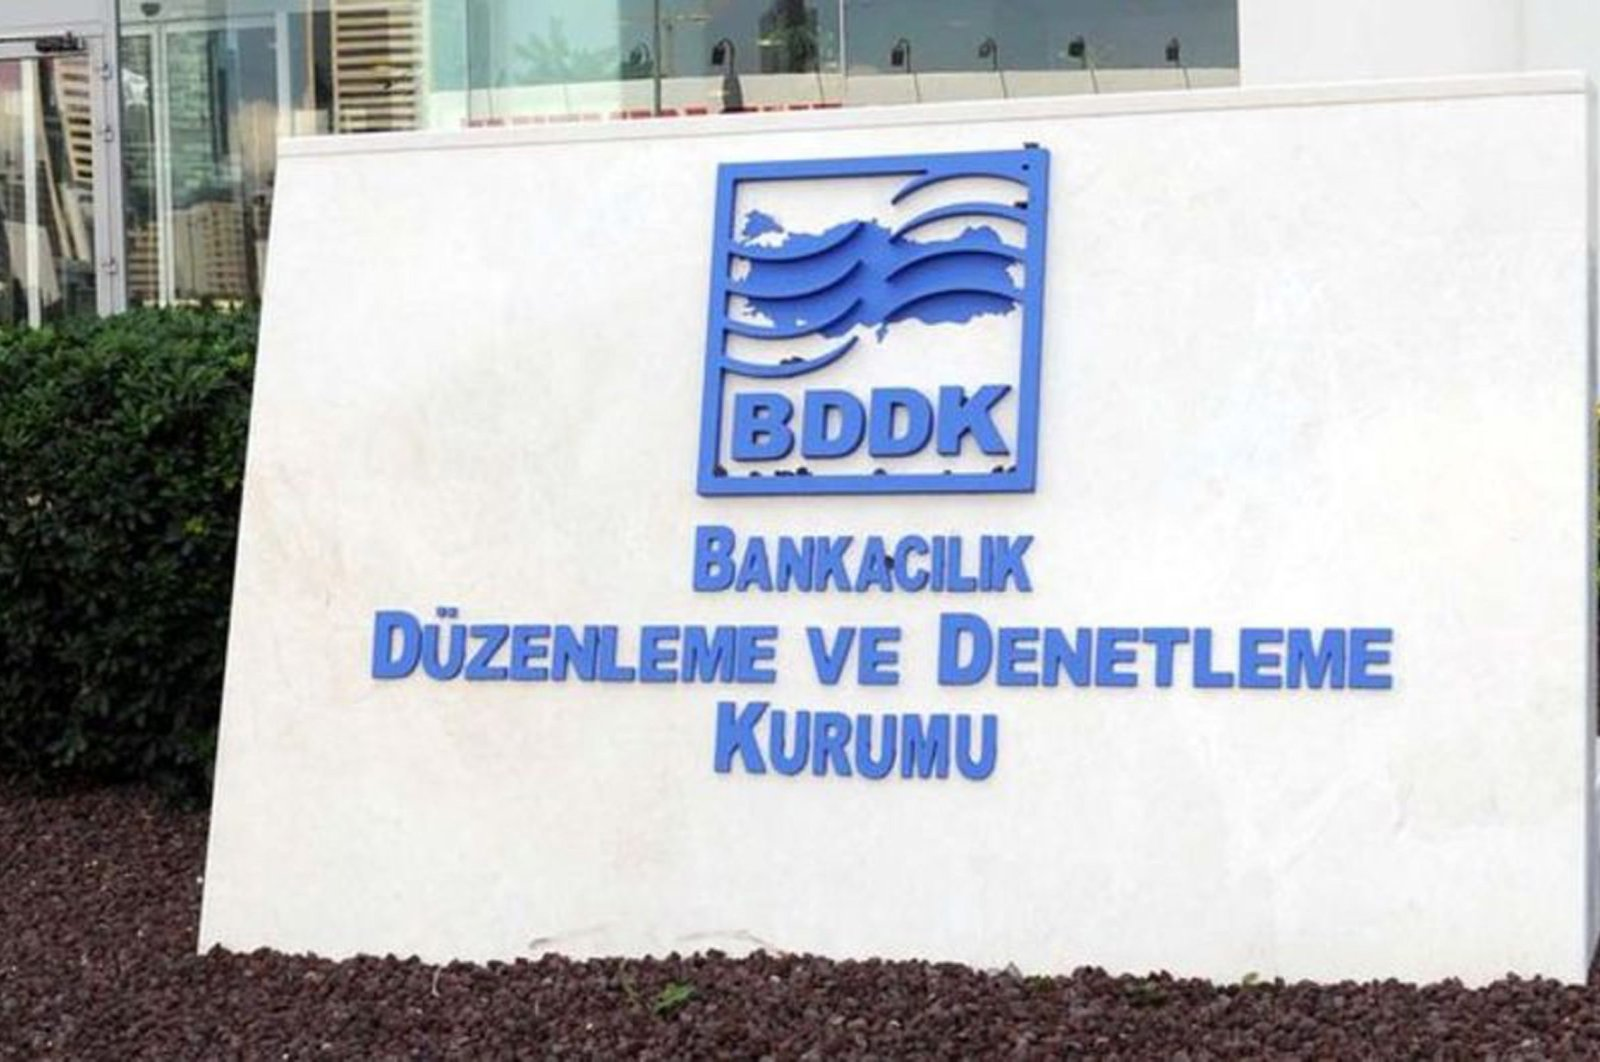 The Banking Regulation and Supervision Agency's (BDDK) logo is seen in front of its headquarters in Istanbul, Turkey, in this undated photo.